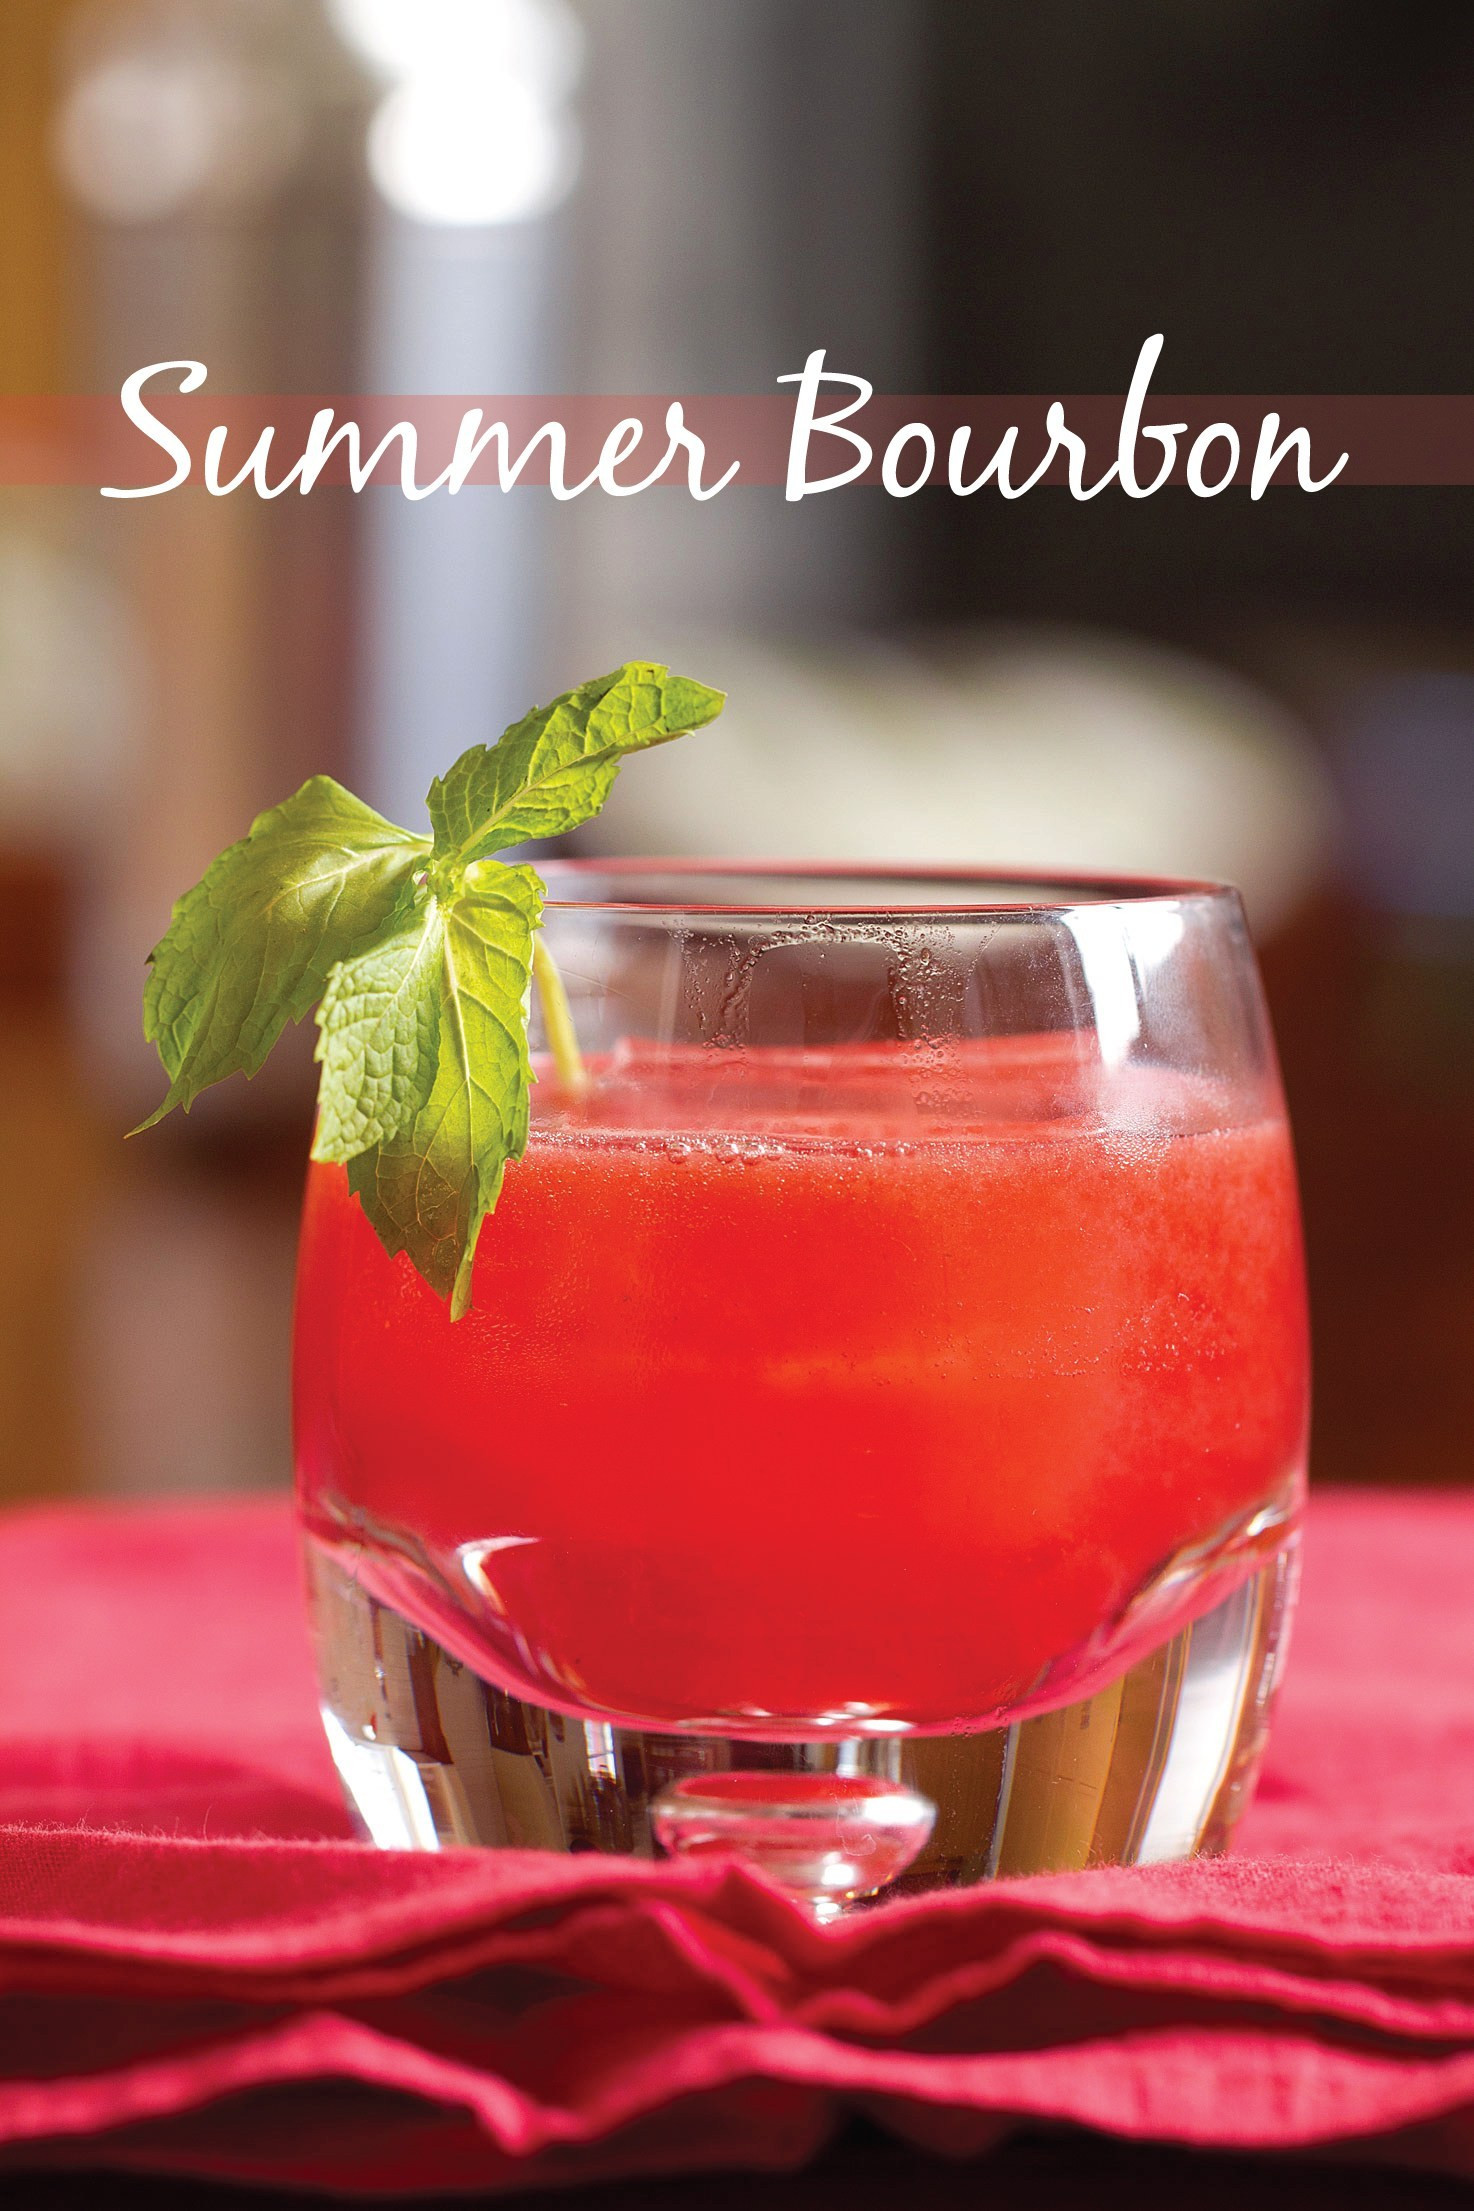 Bourbon Drinks For Summer  Summer Bourbon is that an Oxymoron SippitySup